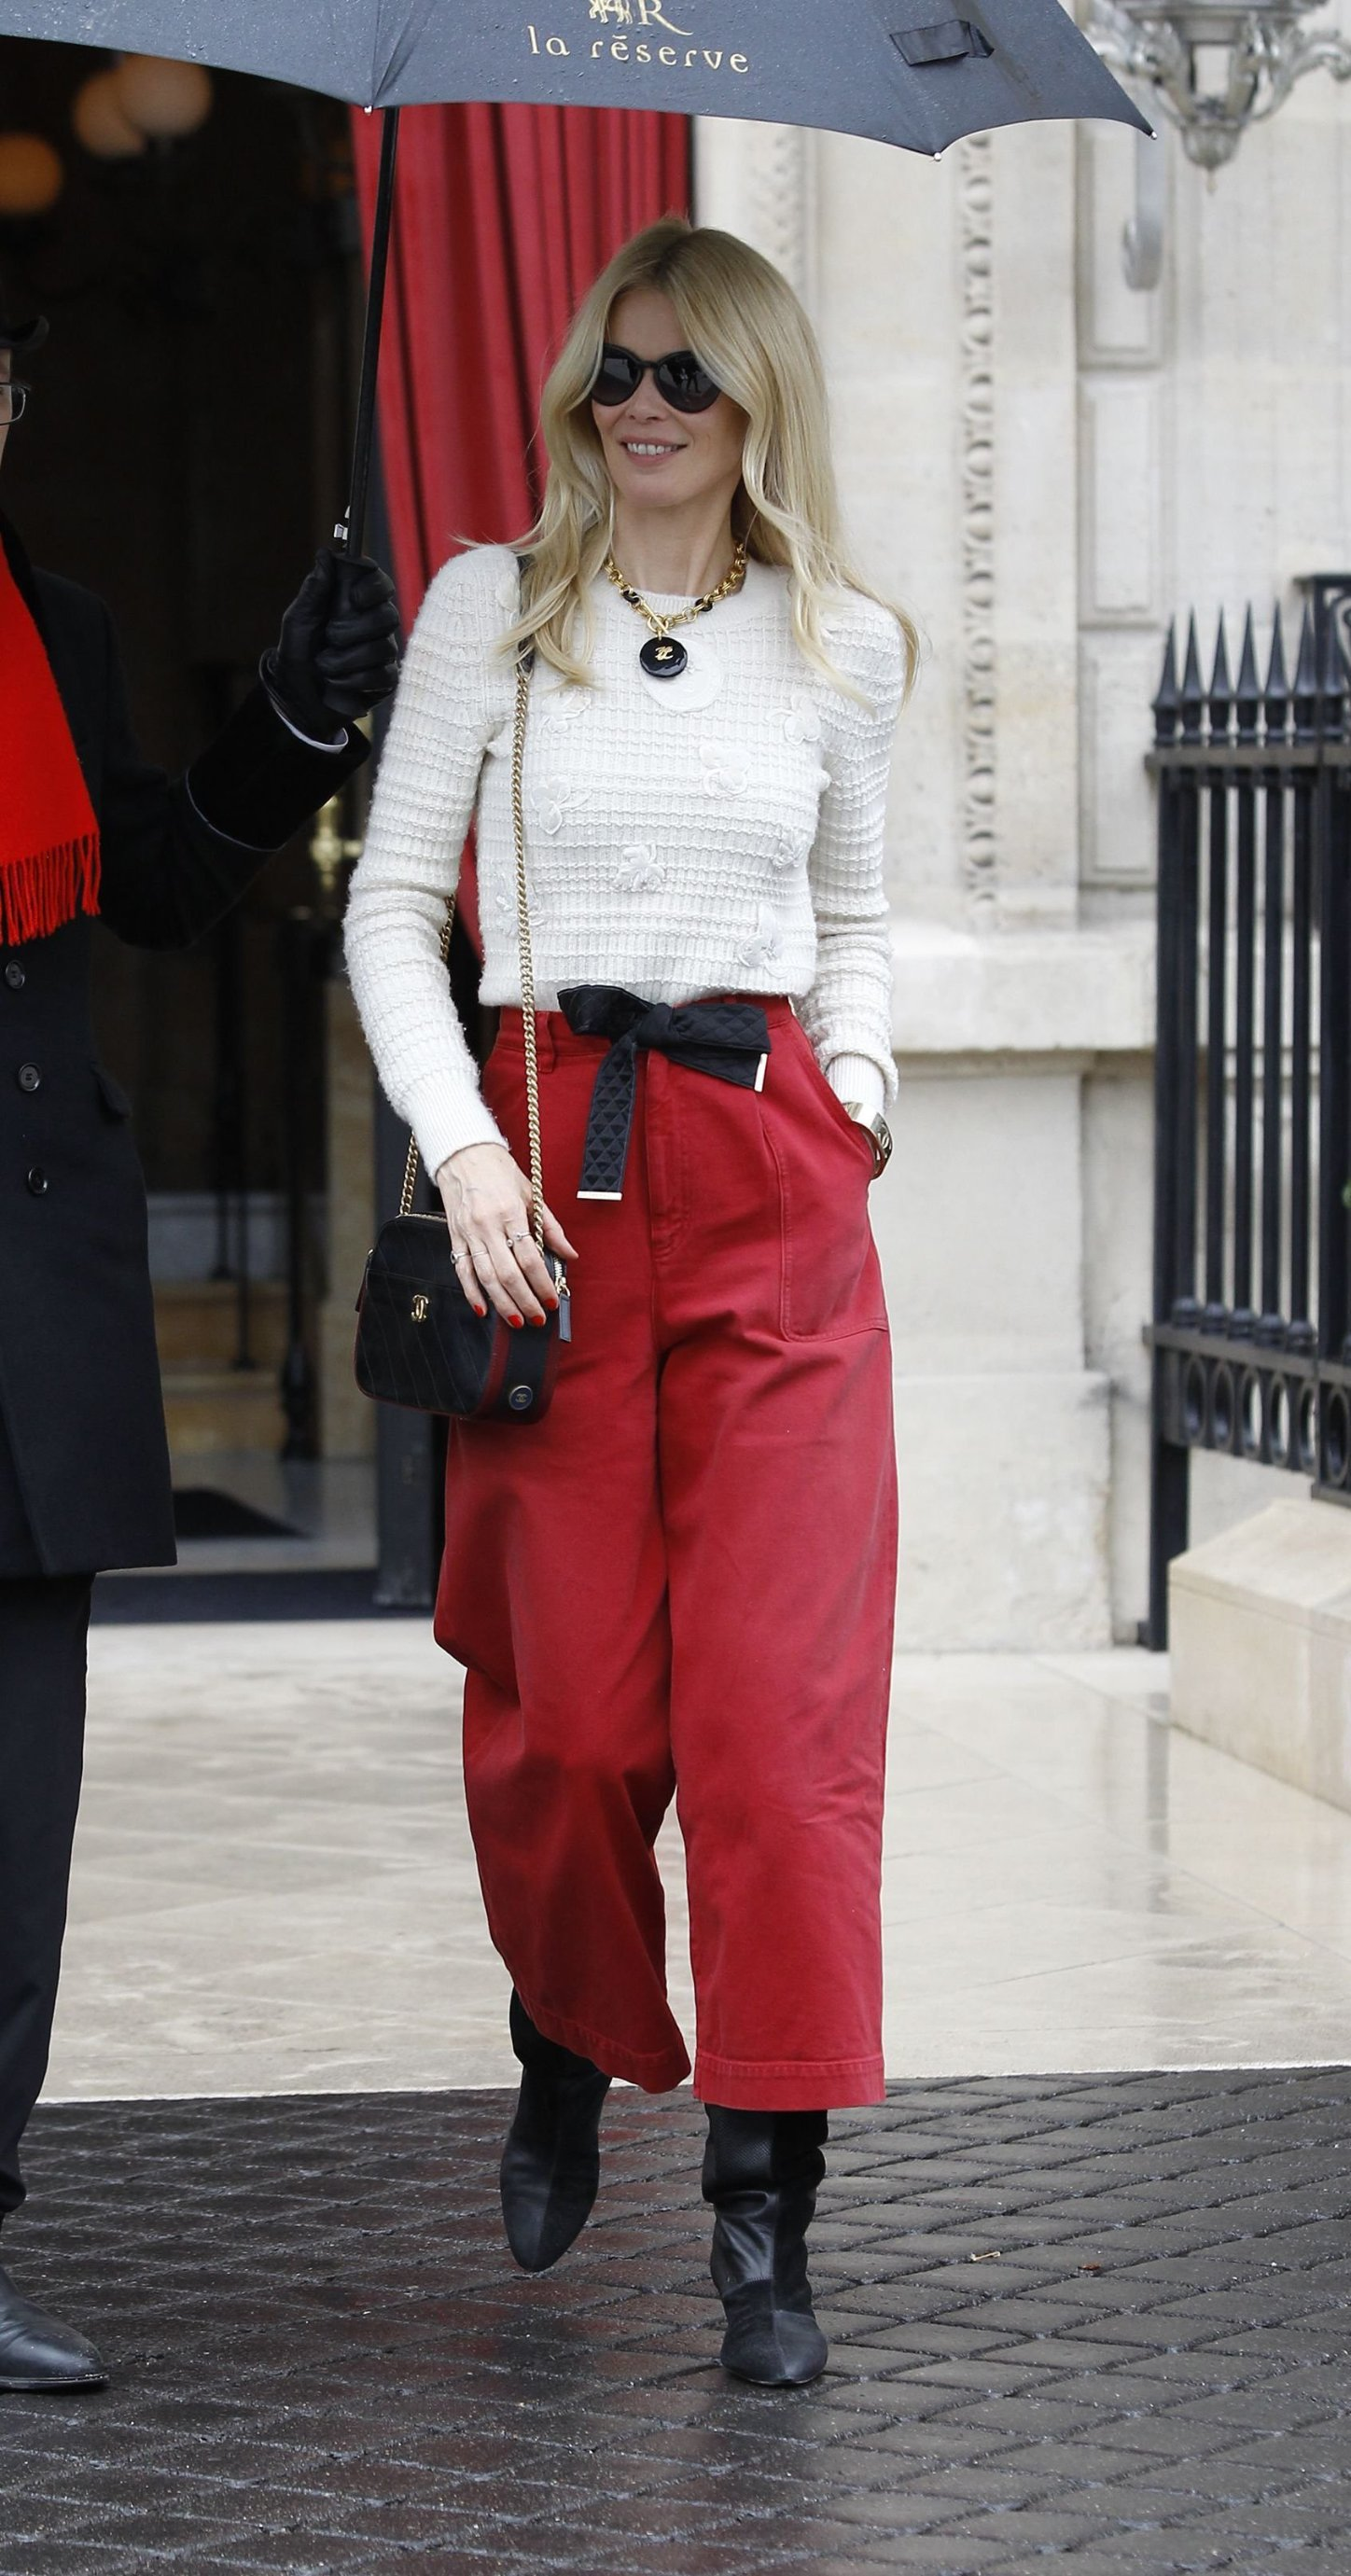 Claudia Schiffer Claudia Schiffer out and about, Paris Fashion Week, France - 05 Mar 2019, Image: 417406190, License: Rights-managed, Restrictions: , Model Release: no, Credit line: Profimedia, TEMP Rex Features